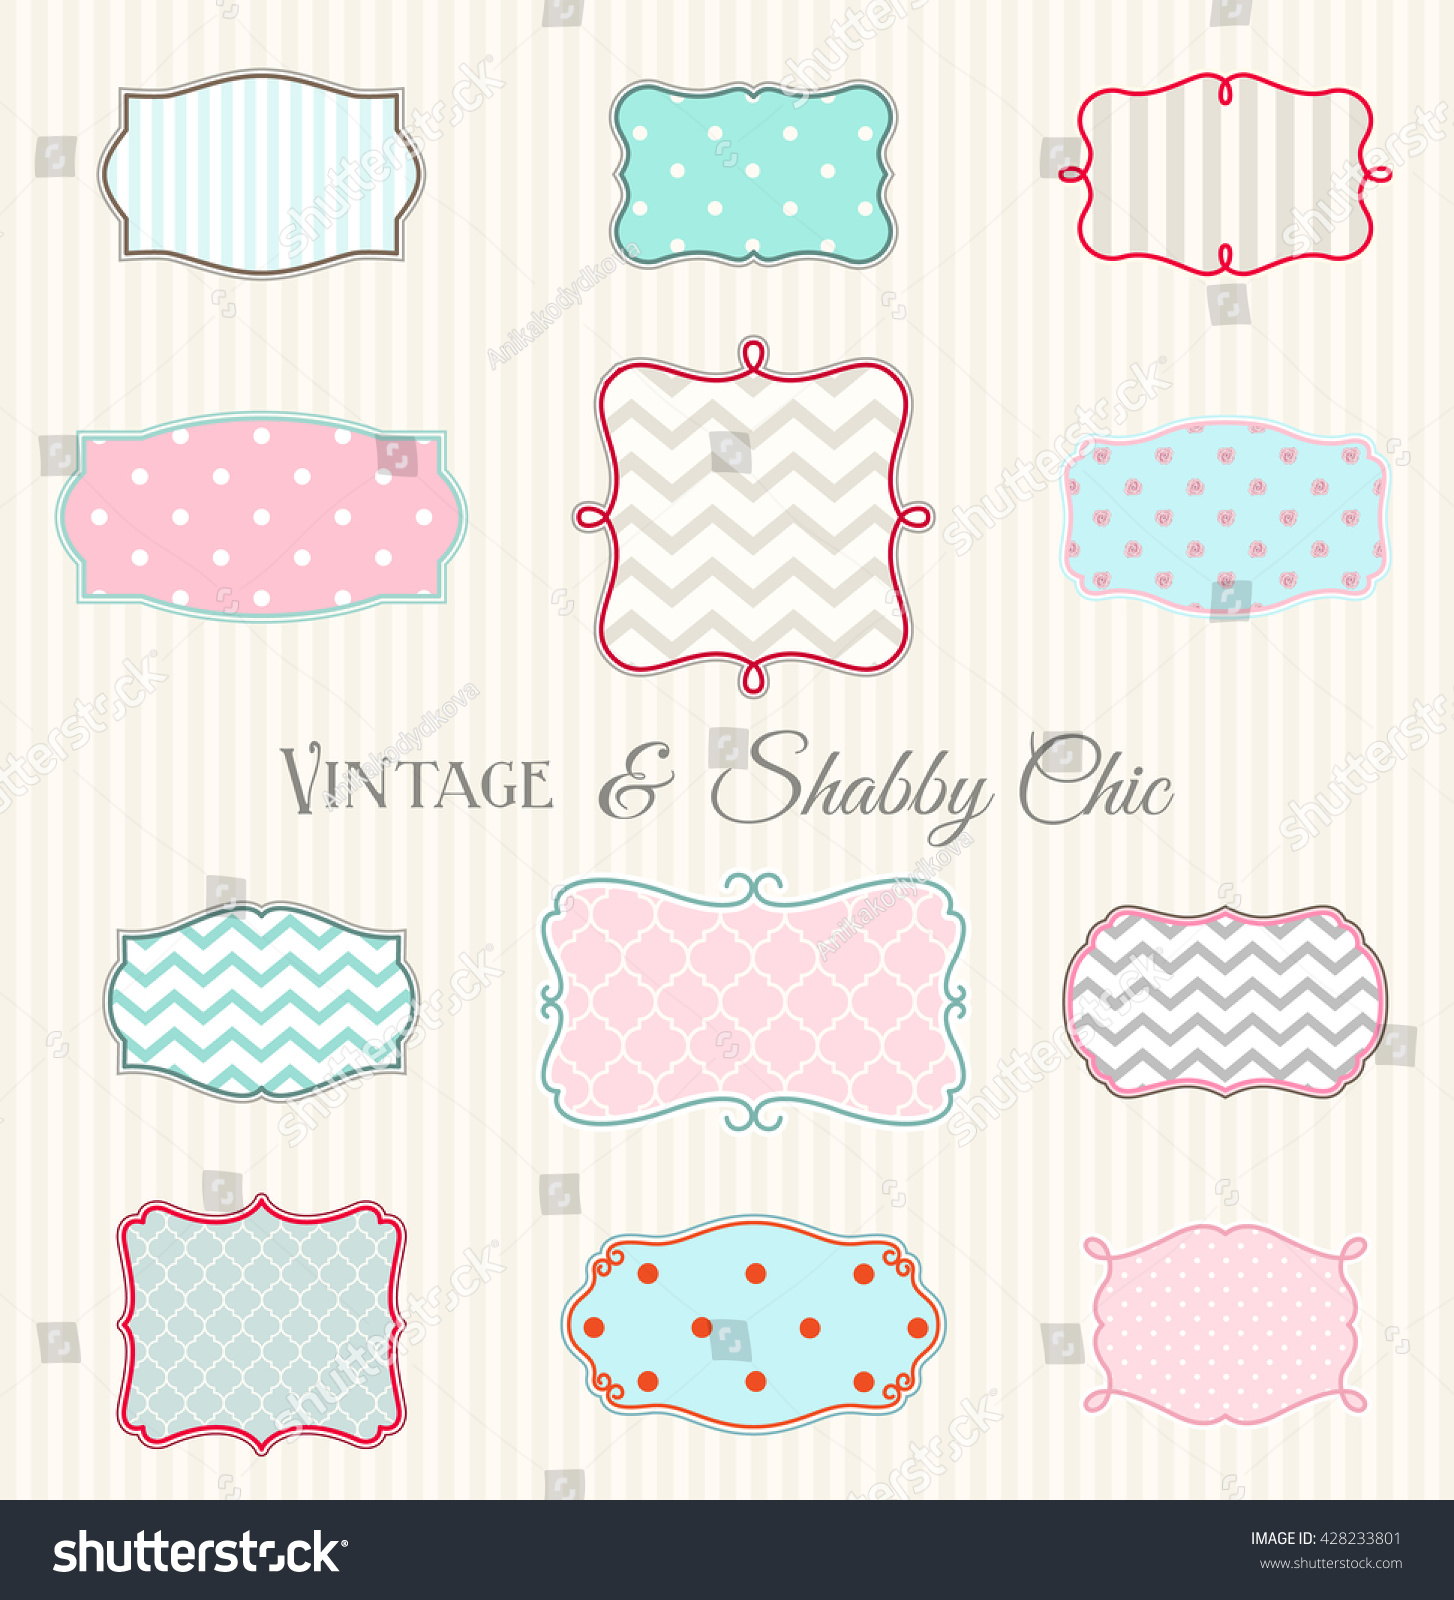 Collection Of Vintage And Shabby Chic Frames Hand Drawn Shapes Filled By Various Textures Chevron Polka Dot Stripes Ina Pastel Colors Vector